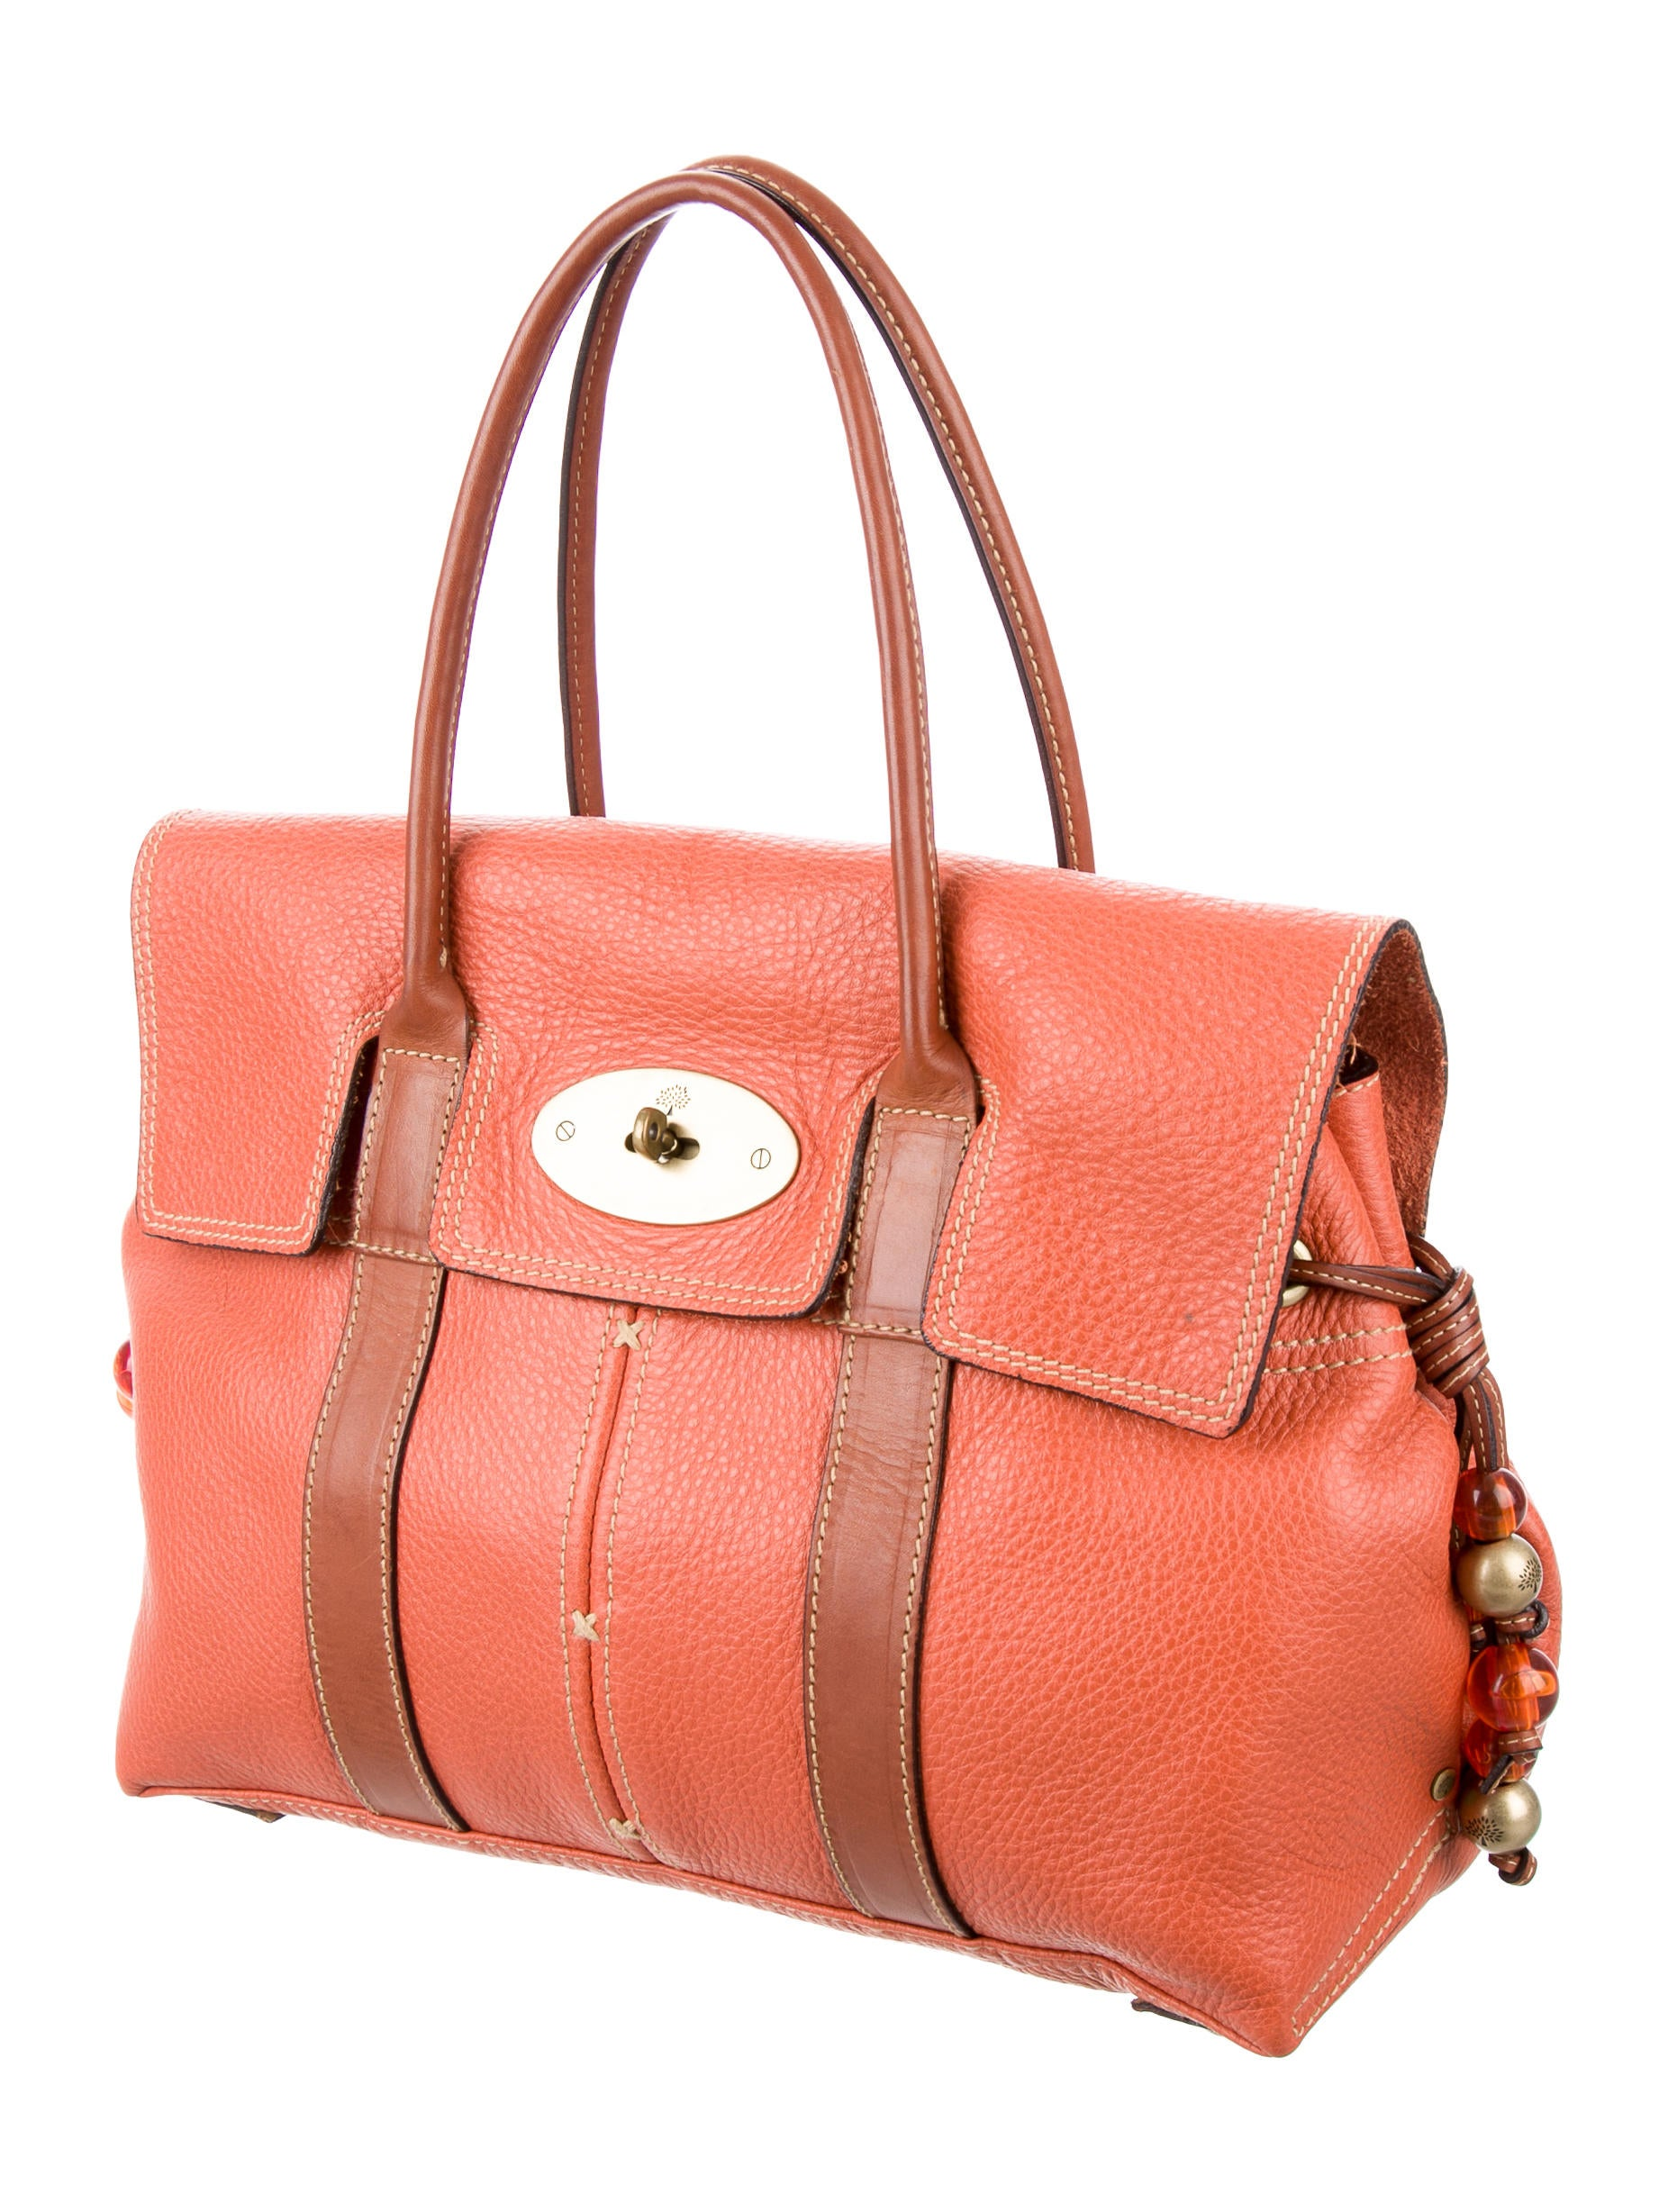 564f7d6d2bb5 Mulberry Leather Bayswater Bag - Handbags - MUL22743